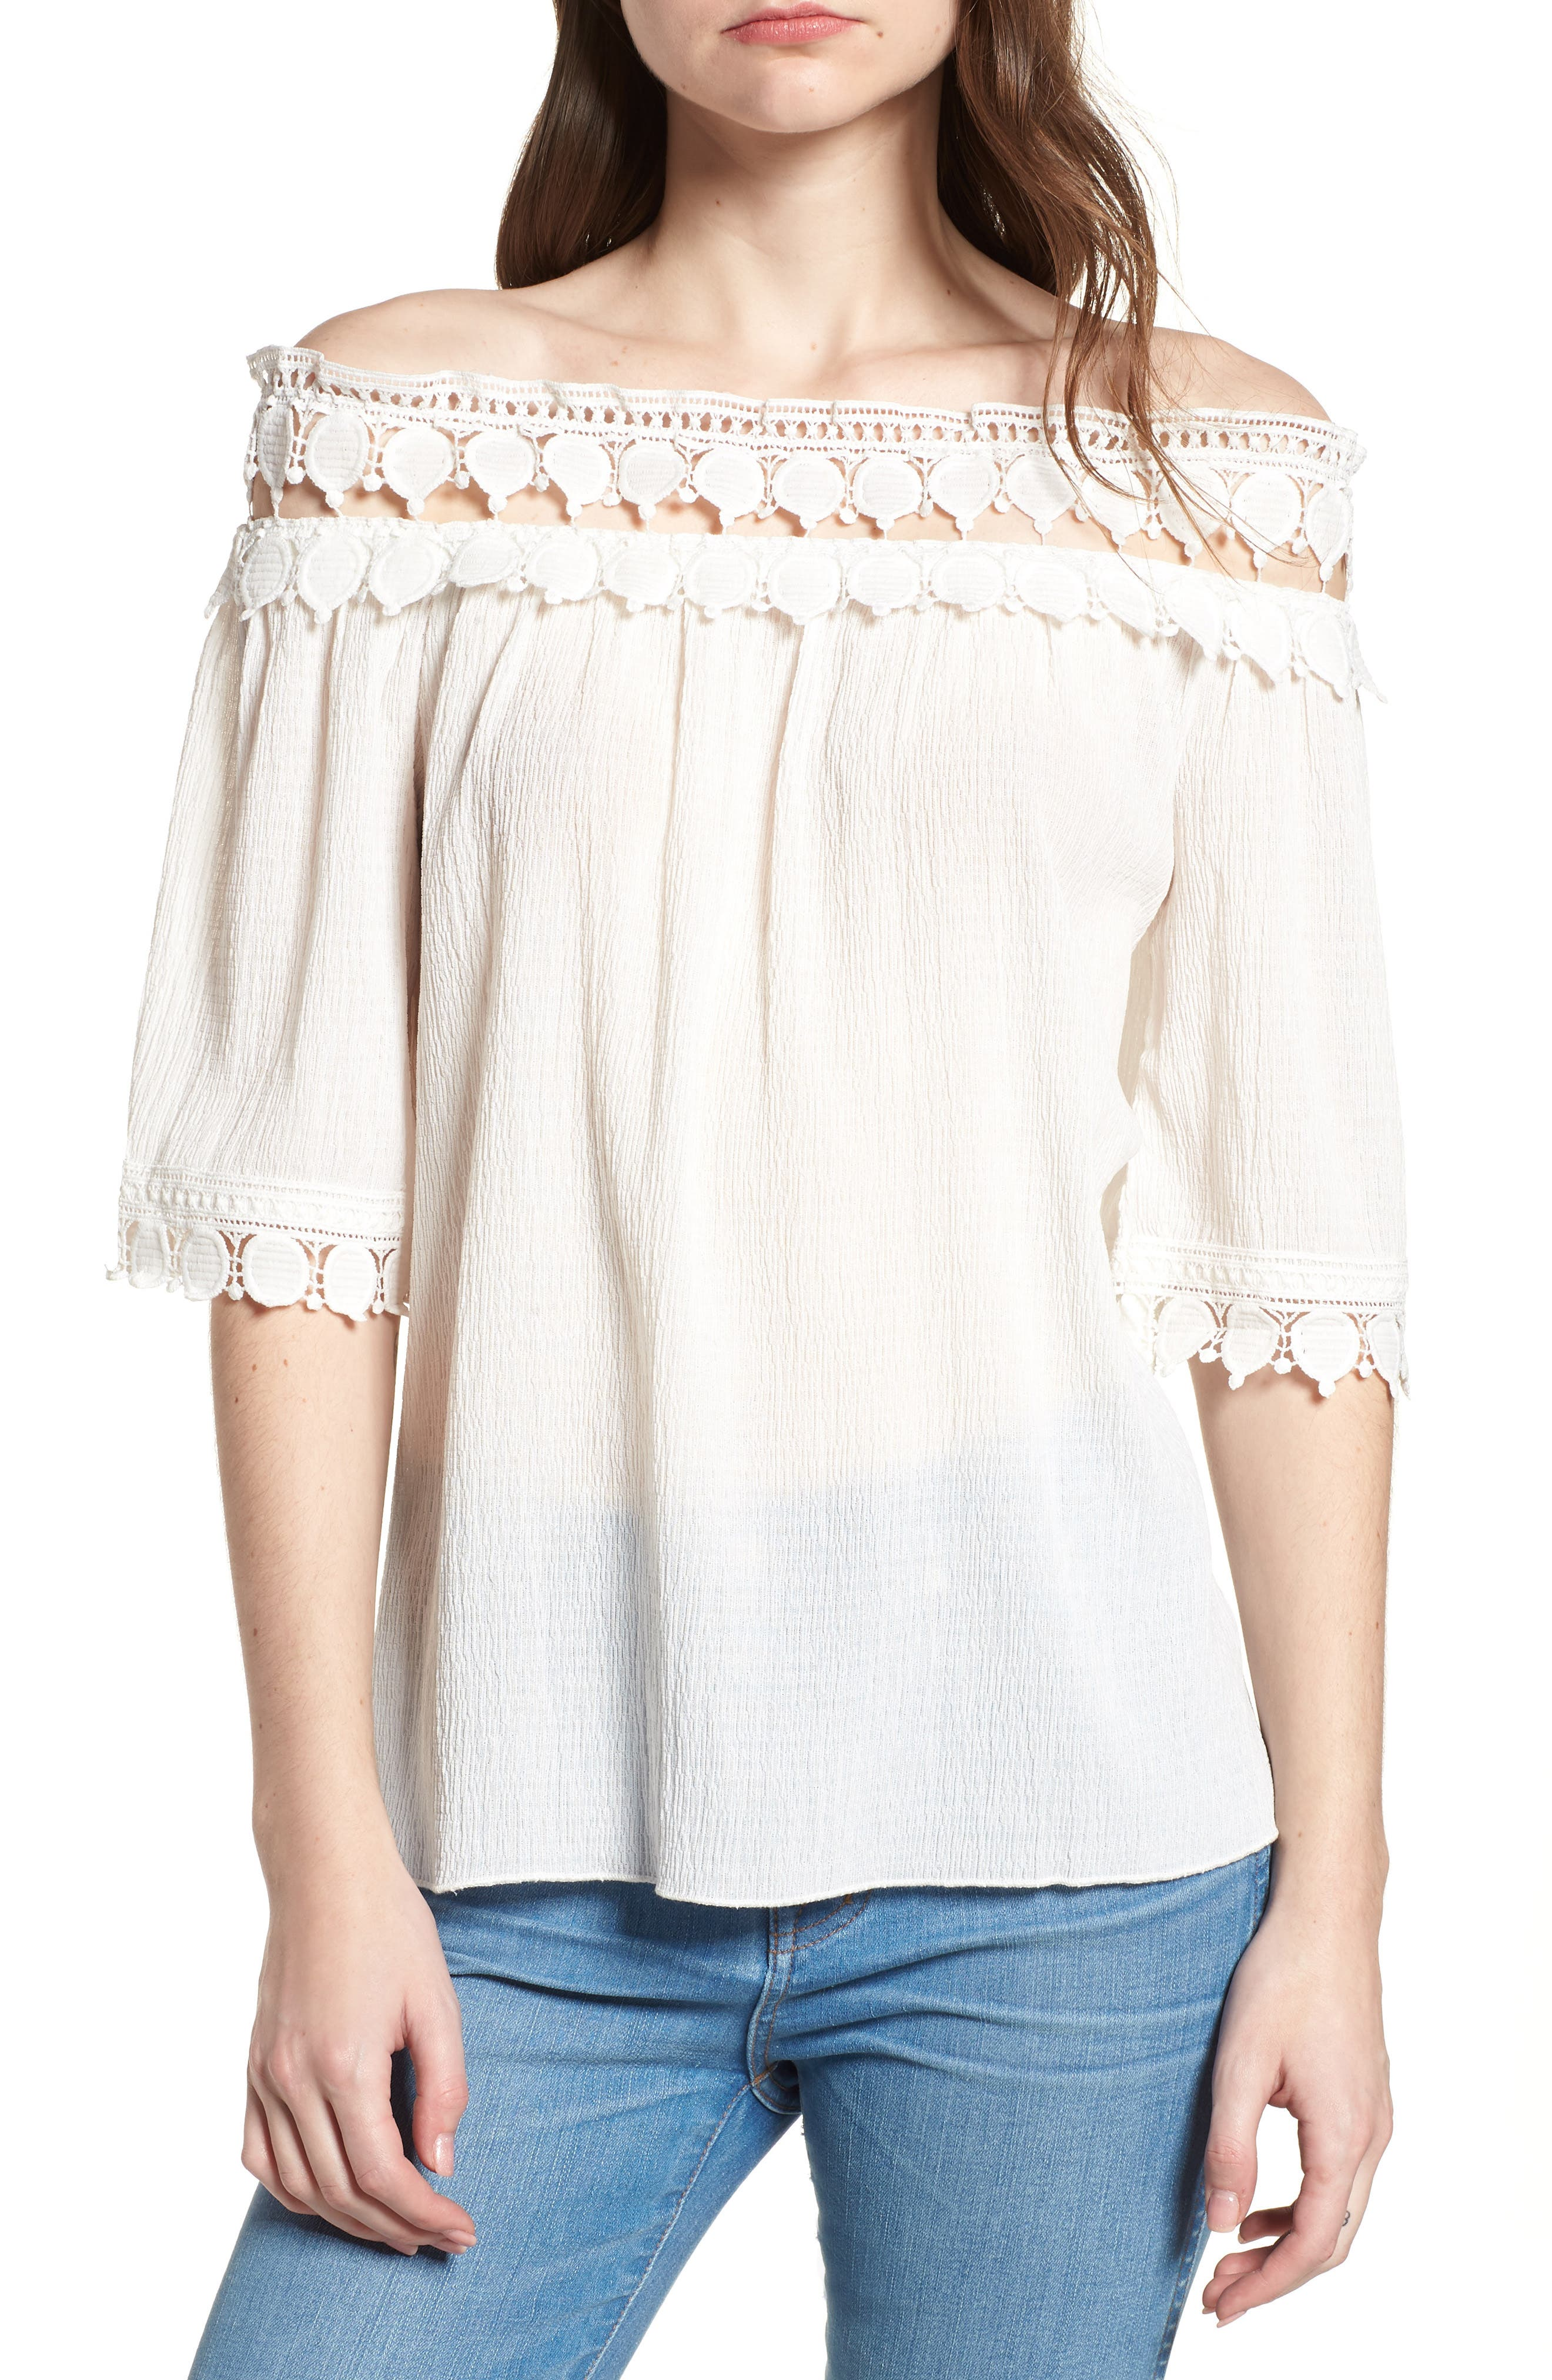 Bishop + Young Olivia Crochet Trim Off the Shoulder Top,                             Main thumbnail 1, color,                             White